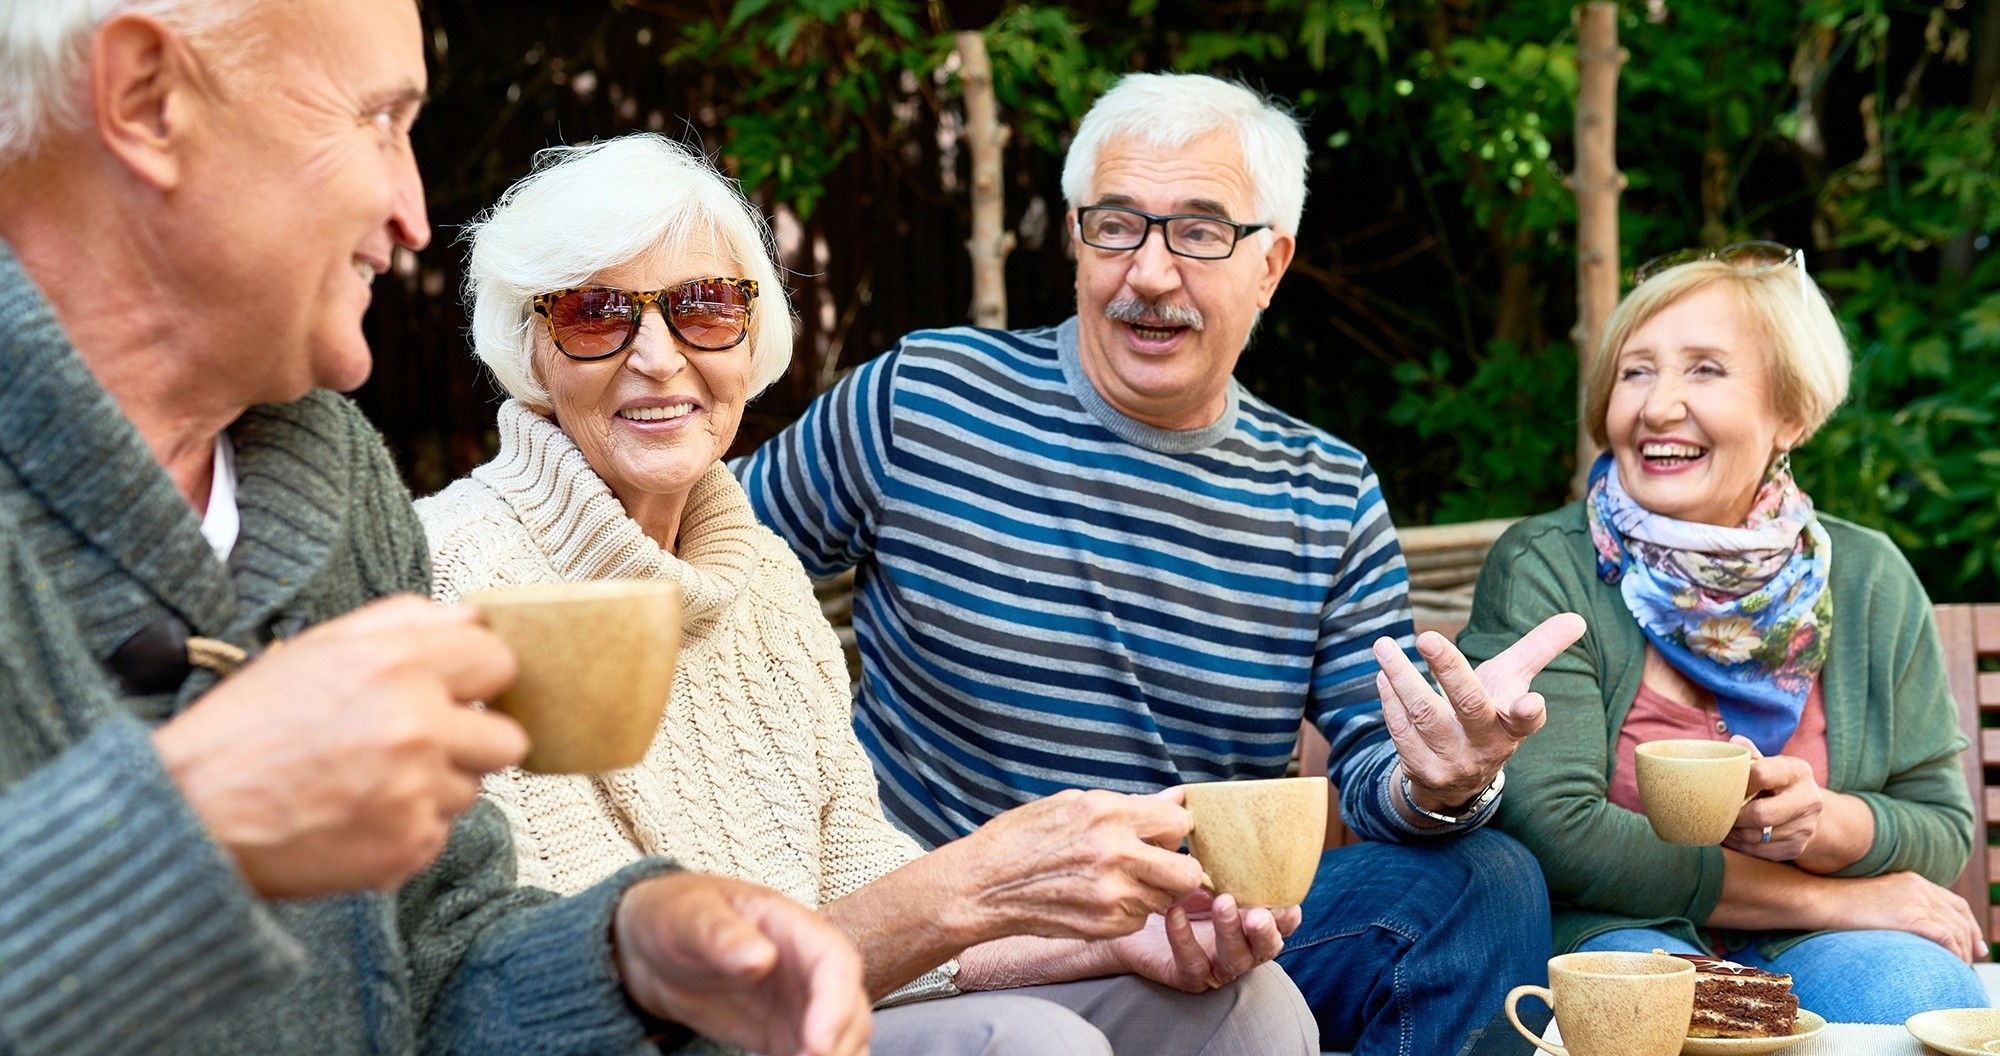 How to Live to the Fullest at a Senior Community